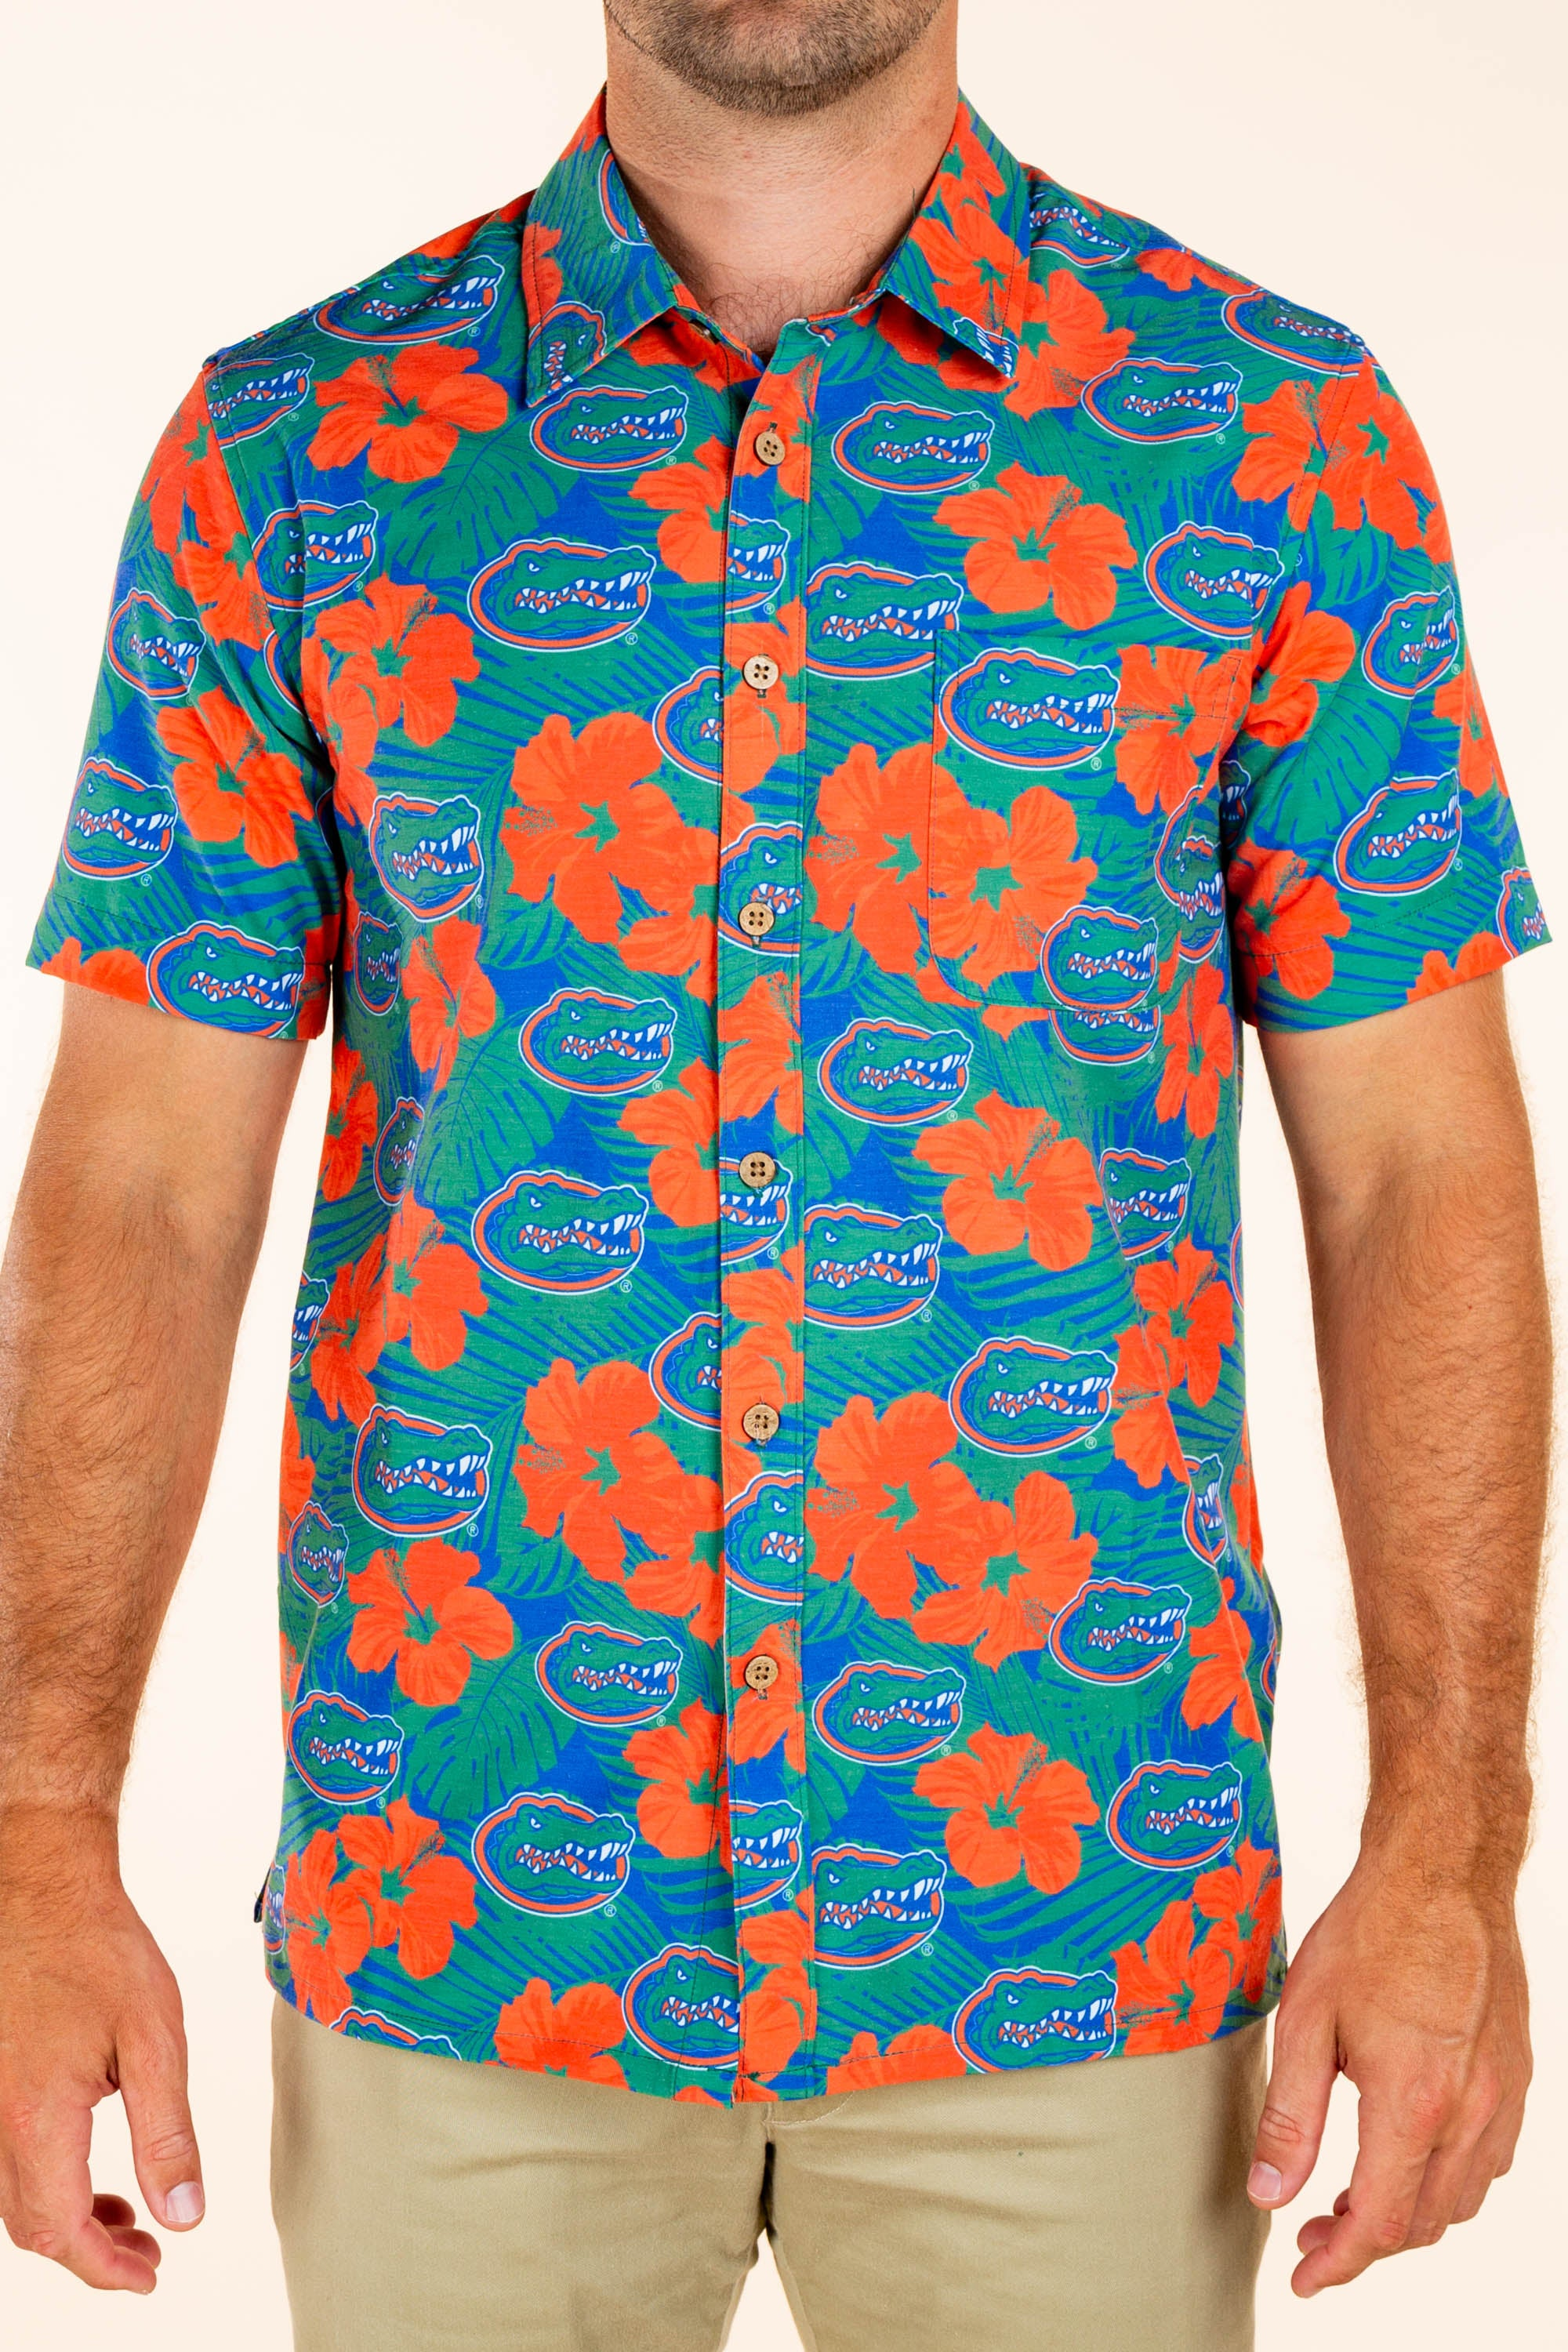 University of Florida Button Up Party Shirt